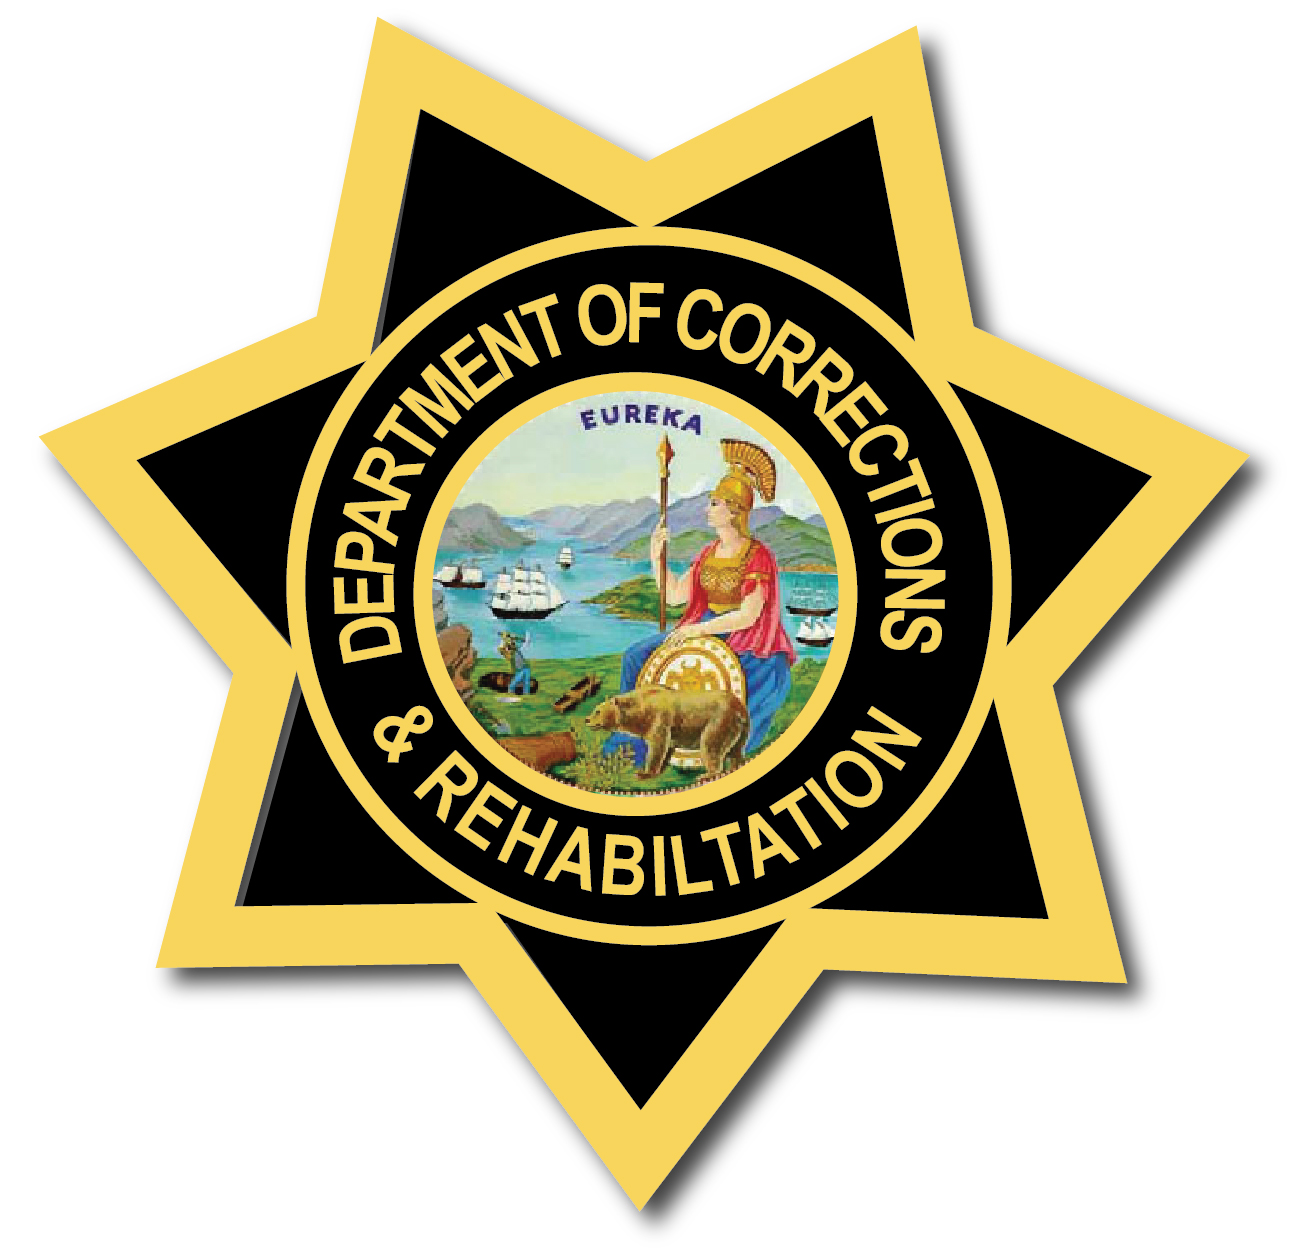 PP-1762 - Carved  Wall Plaque of the Star Badge of theCalifornia Department of Corrections and Rehabilitation (State Prisons), Artist Painted